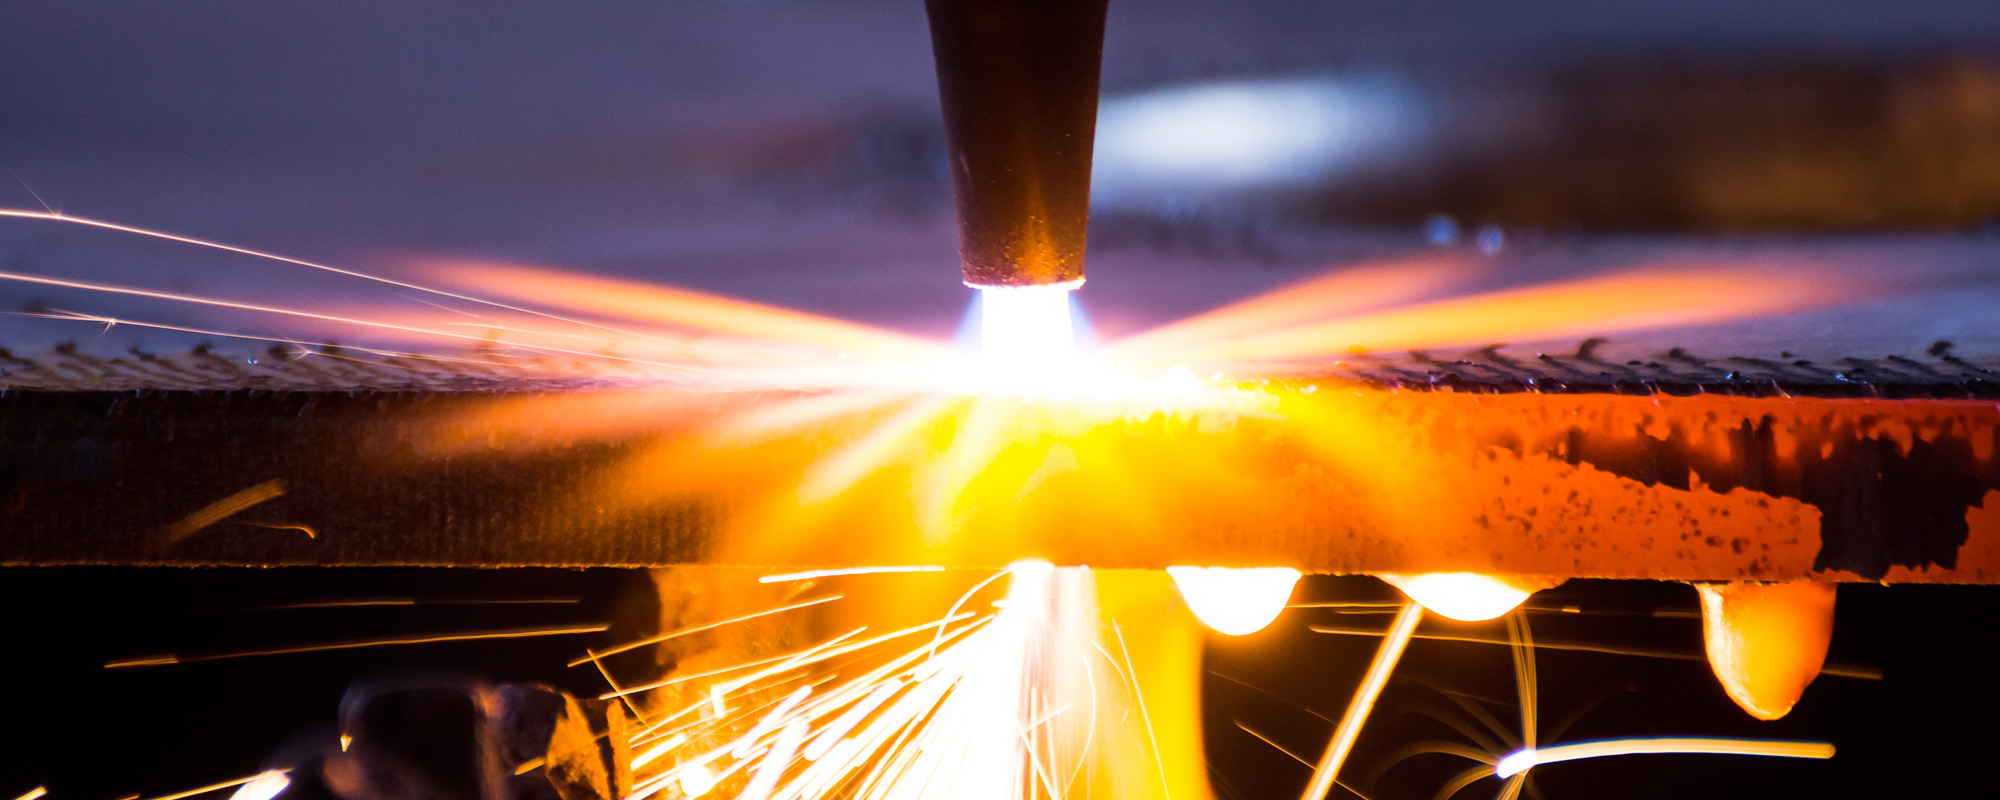 Flame Cutting Steel Profiles West Yorkshire Steel